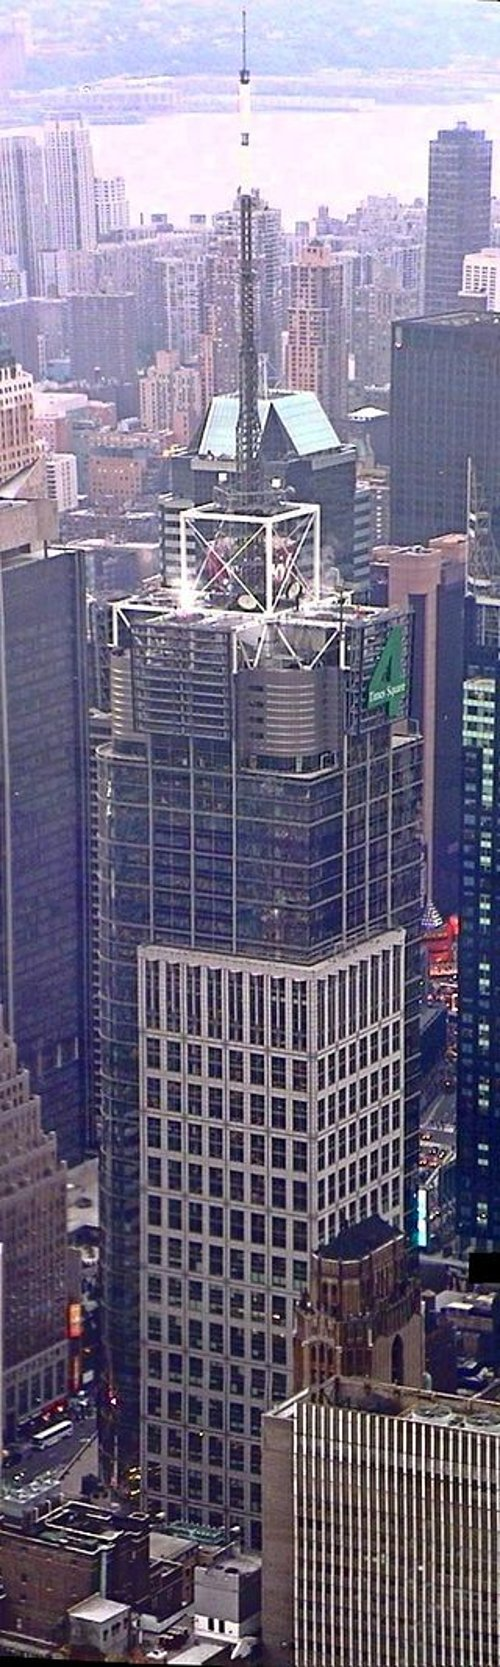 Condé Nast Building New York City, New York in Begin Again